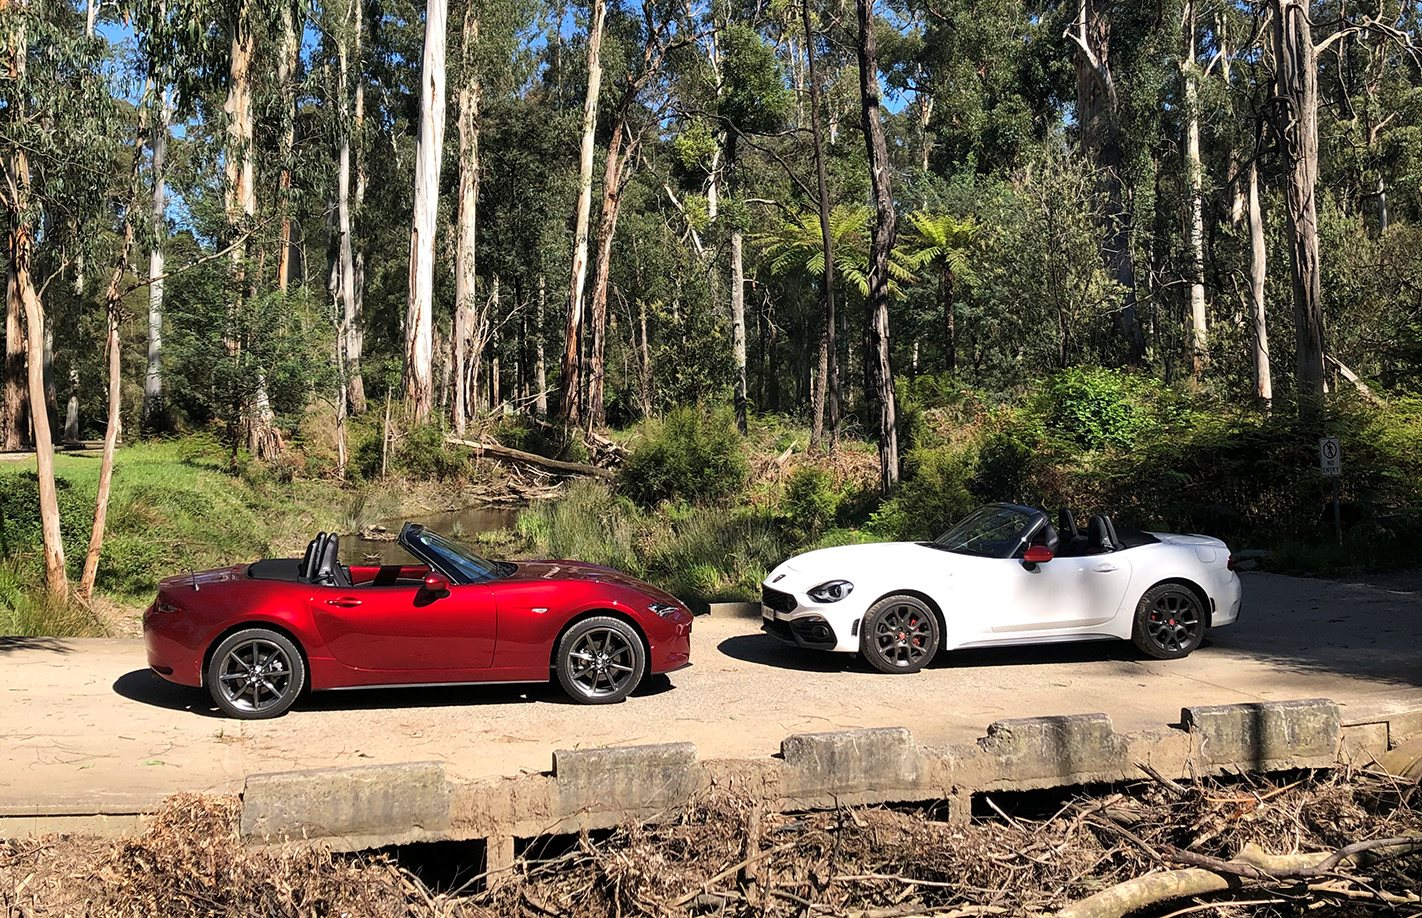 Mazda MX-5 Roadster GT v Abarth 124 Spider comparison